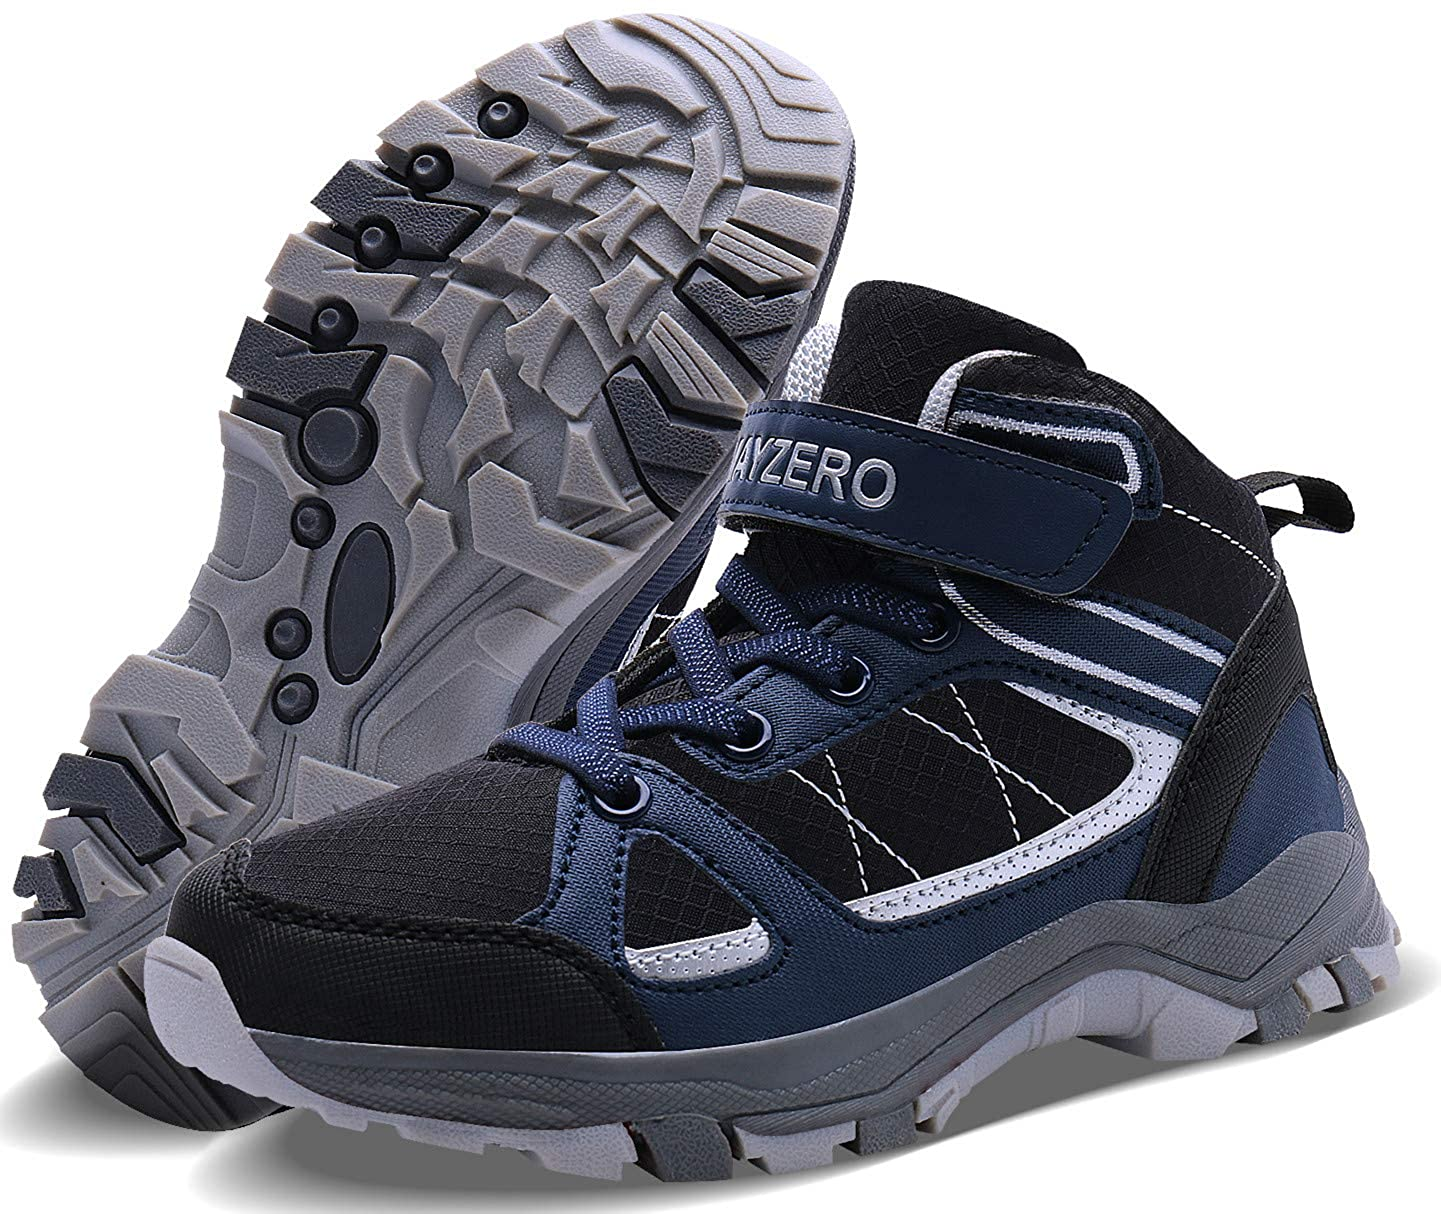 Wonesion Kids Hiking Shoes Climbing Trekking Boots Boys Girls Outdoor  Walking Shoes for Travelling Camping Winter Boys